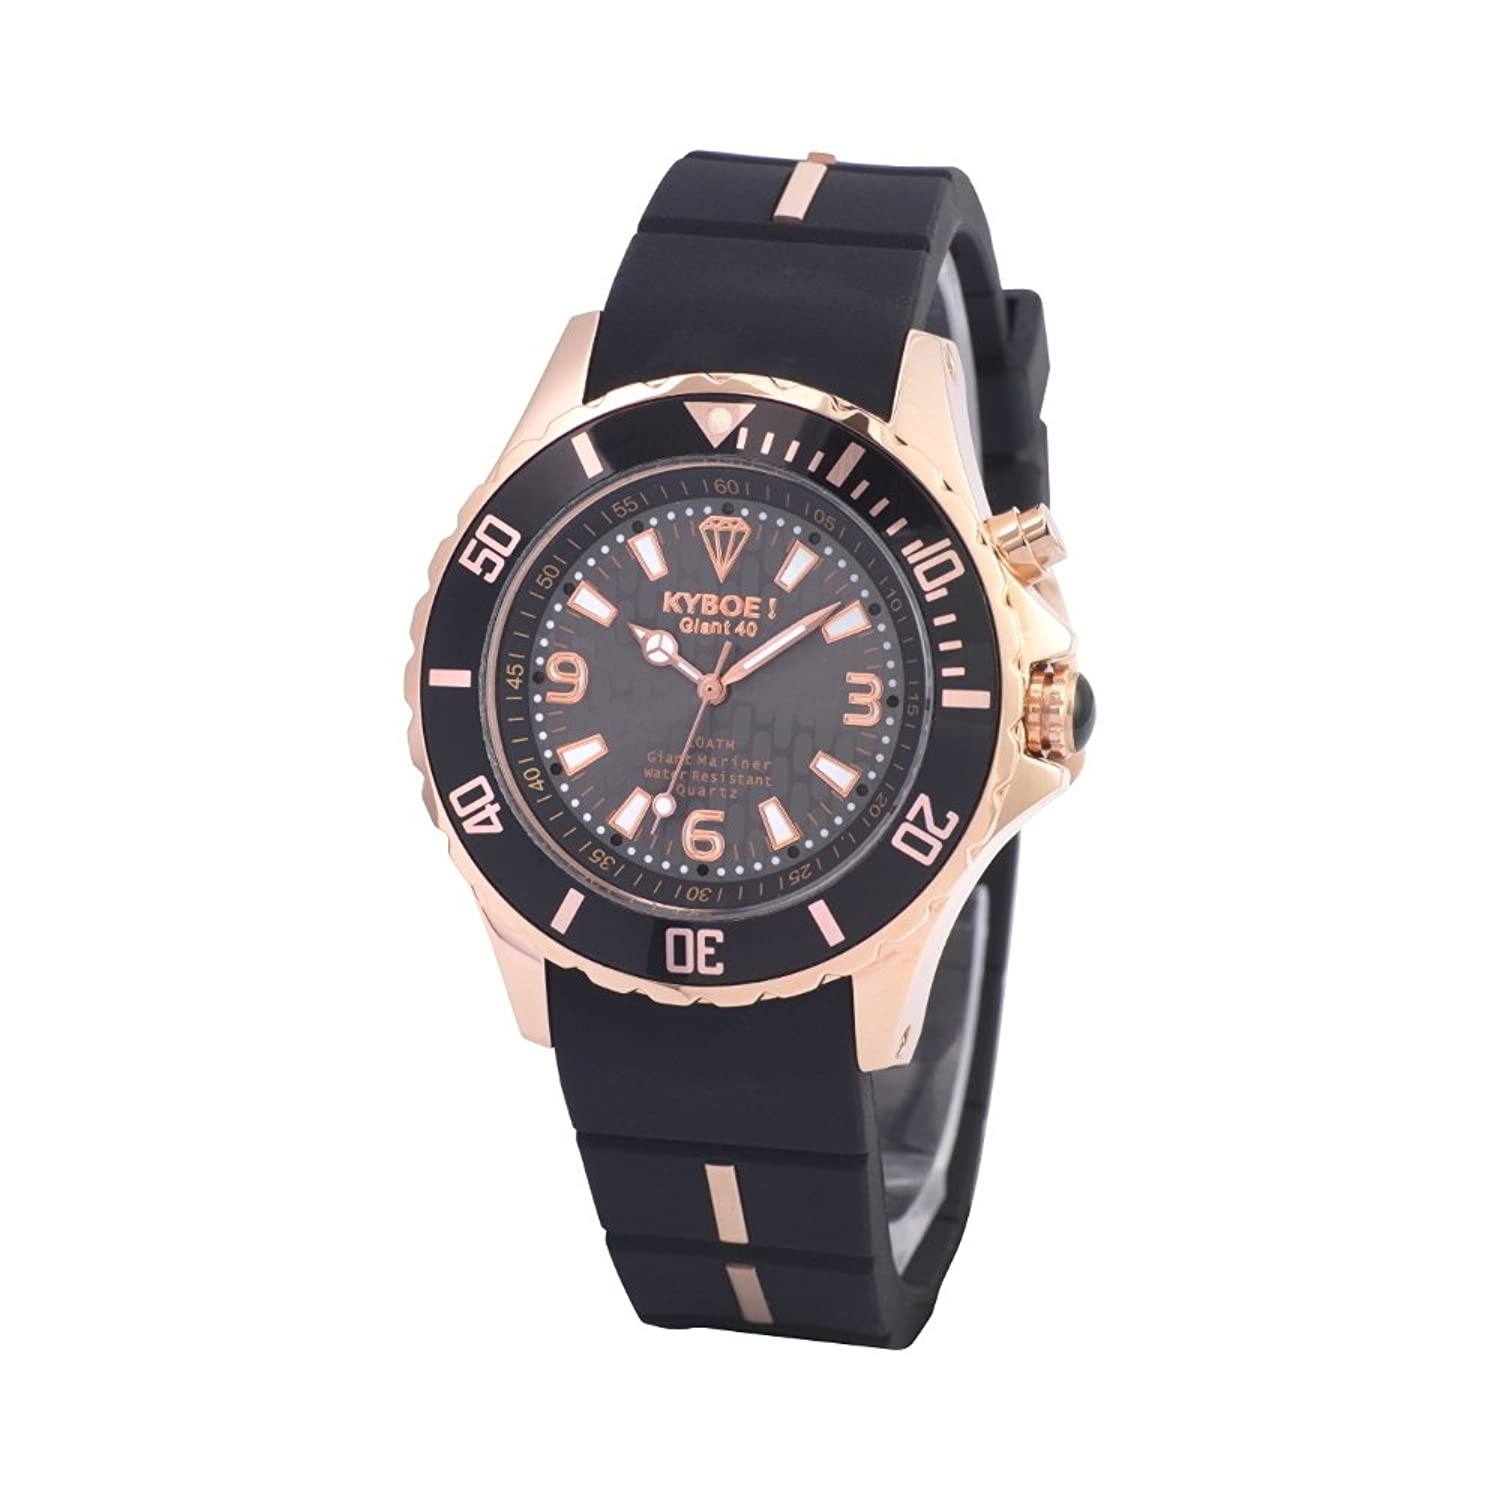 KYBOE! Rose Gold XS Series horloge RG-001 (40mm)